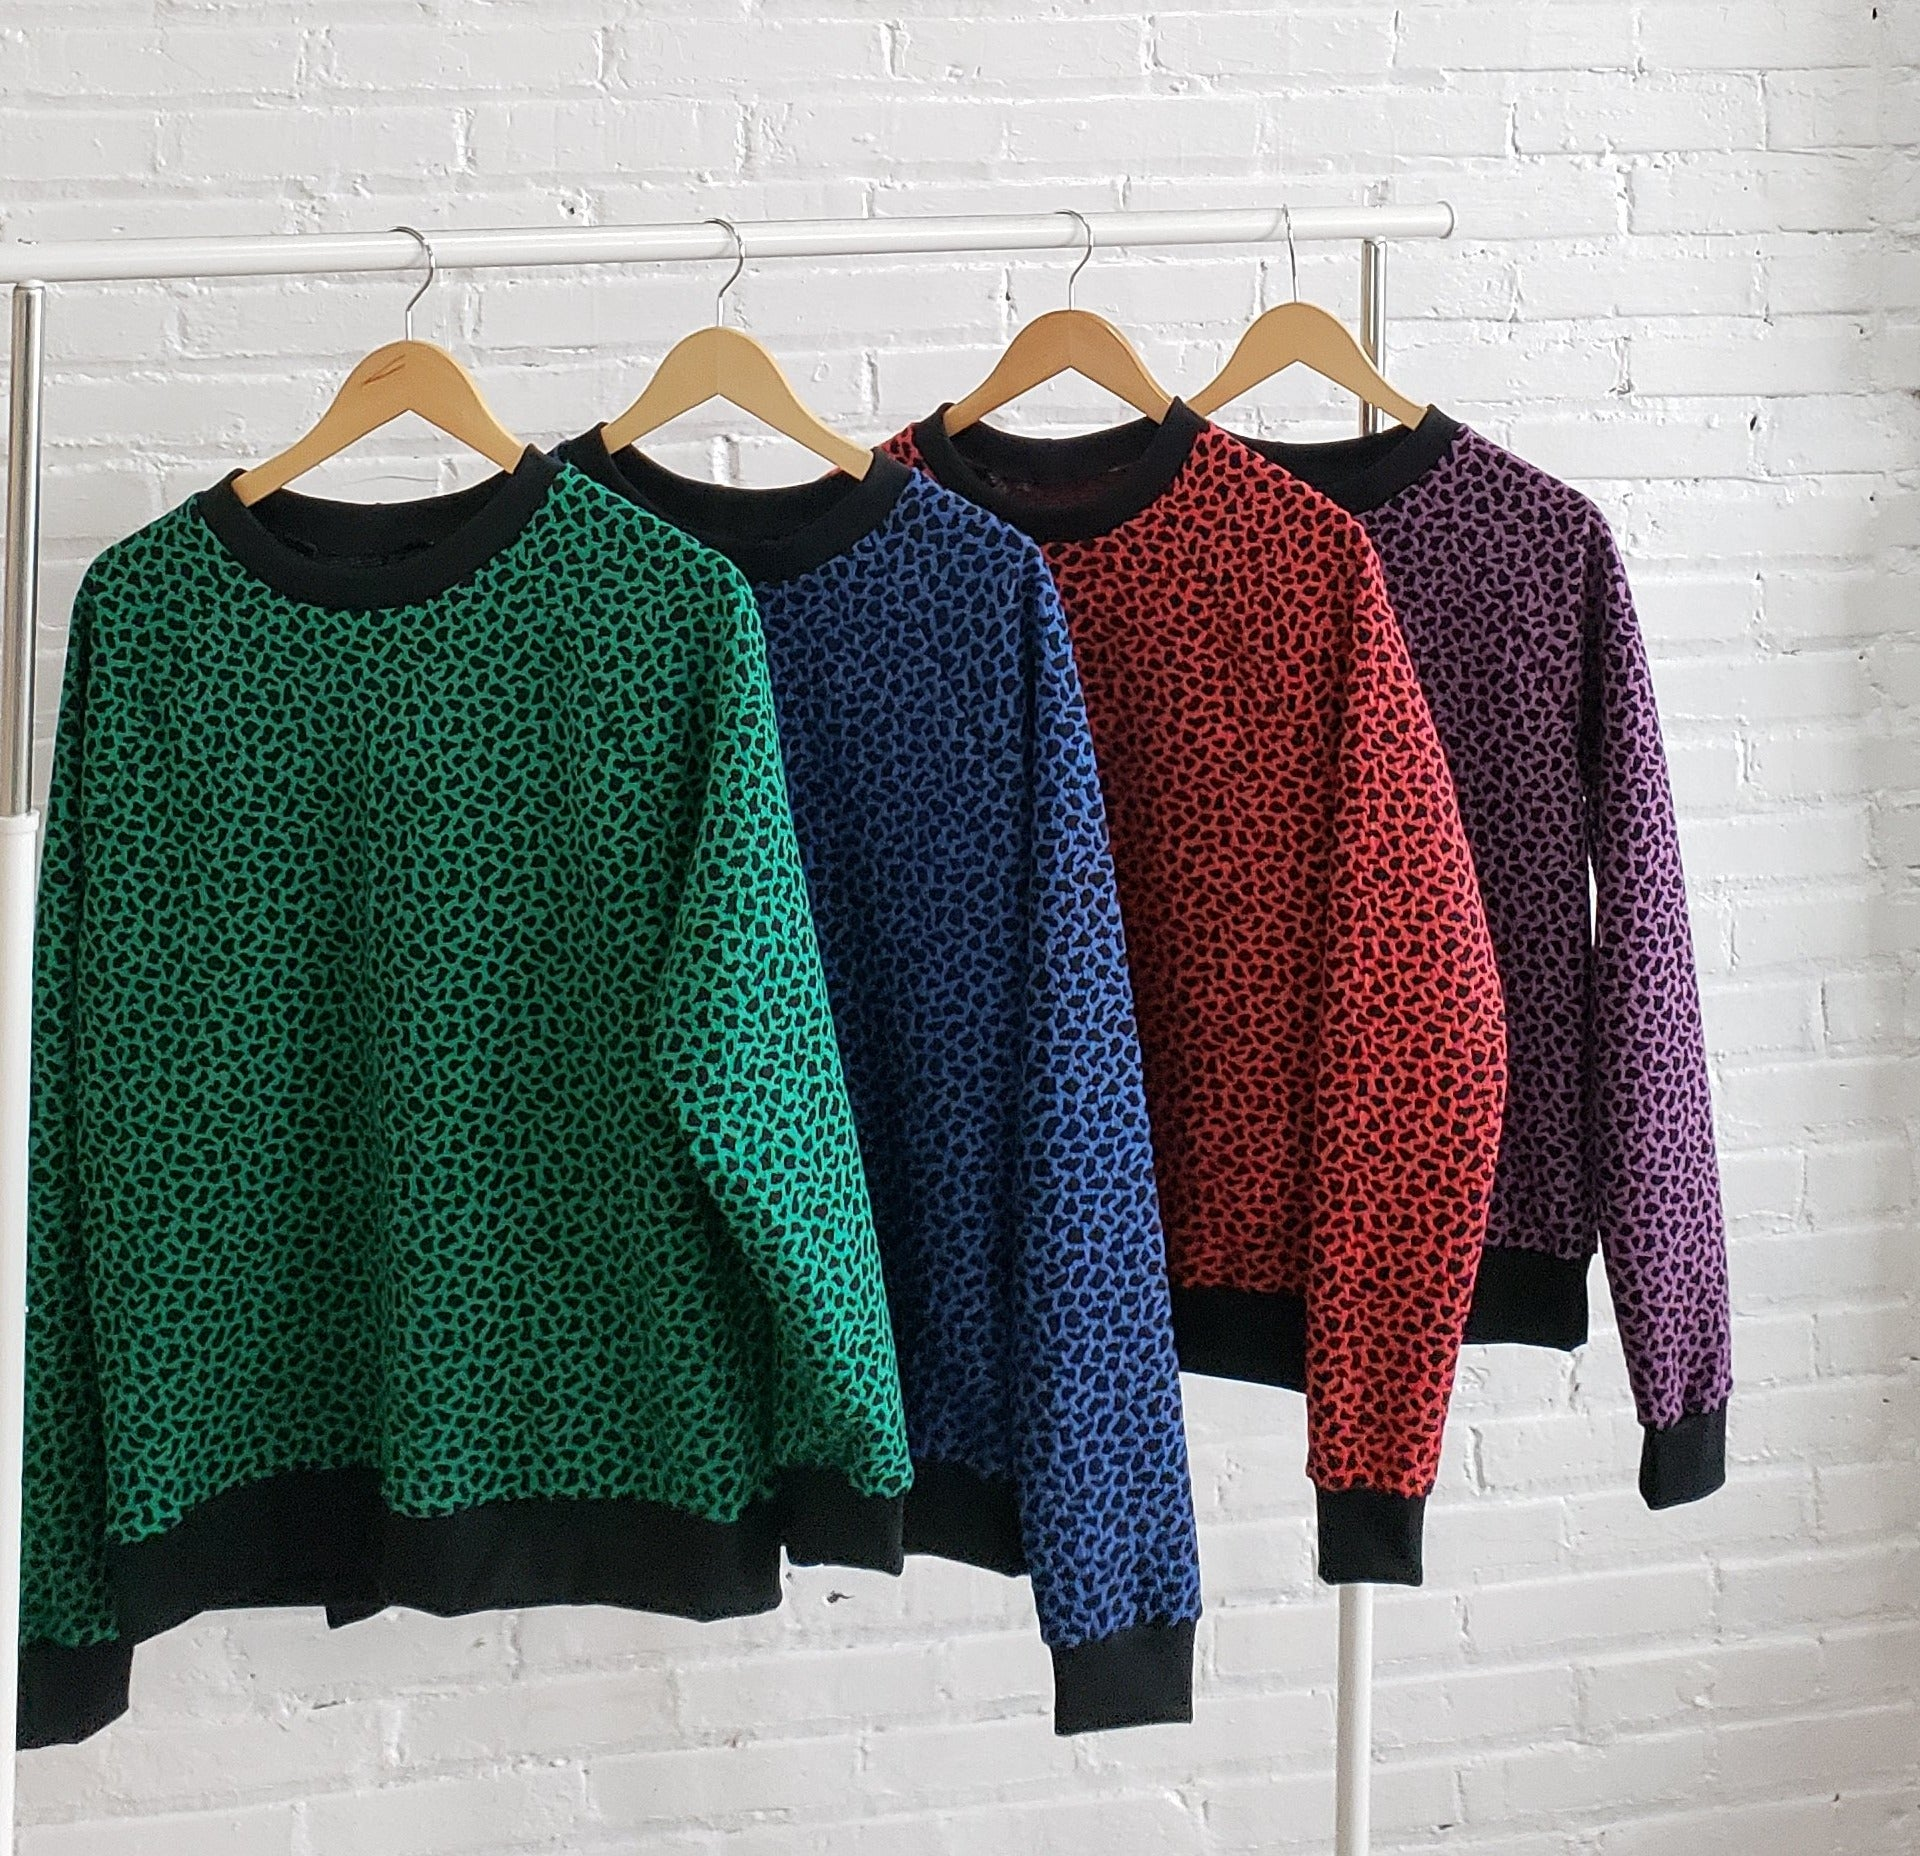 sweatshirts hanging on a clothing rack in order of green, blue, red and purple with black cheetah spots and cuffs